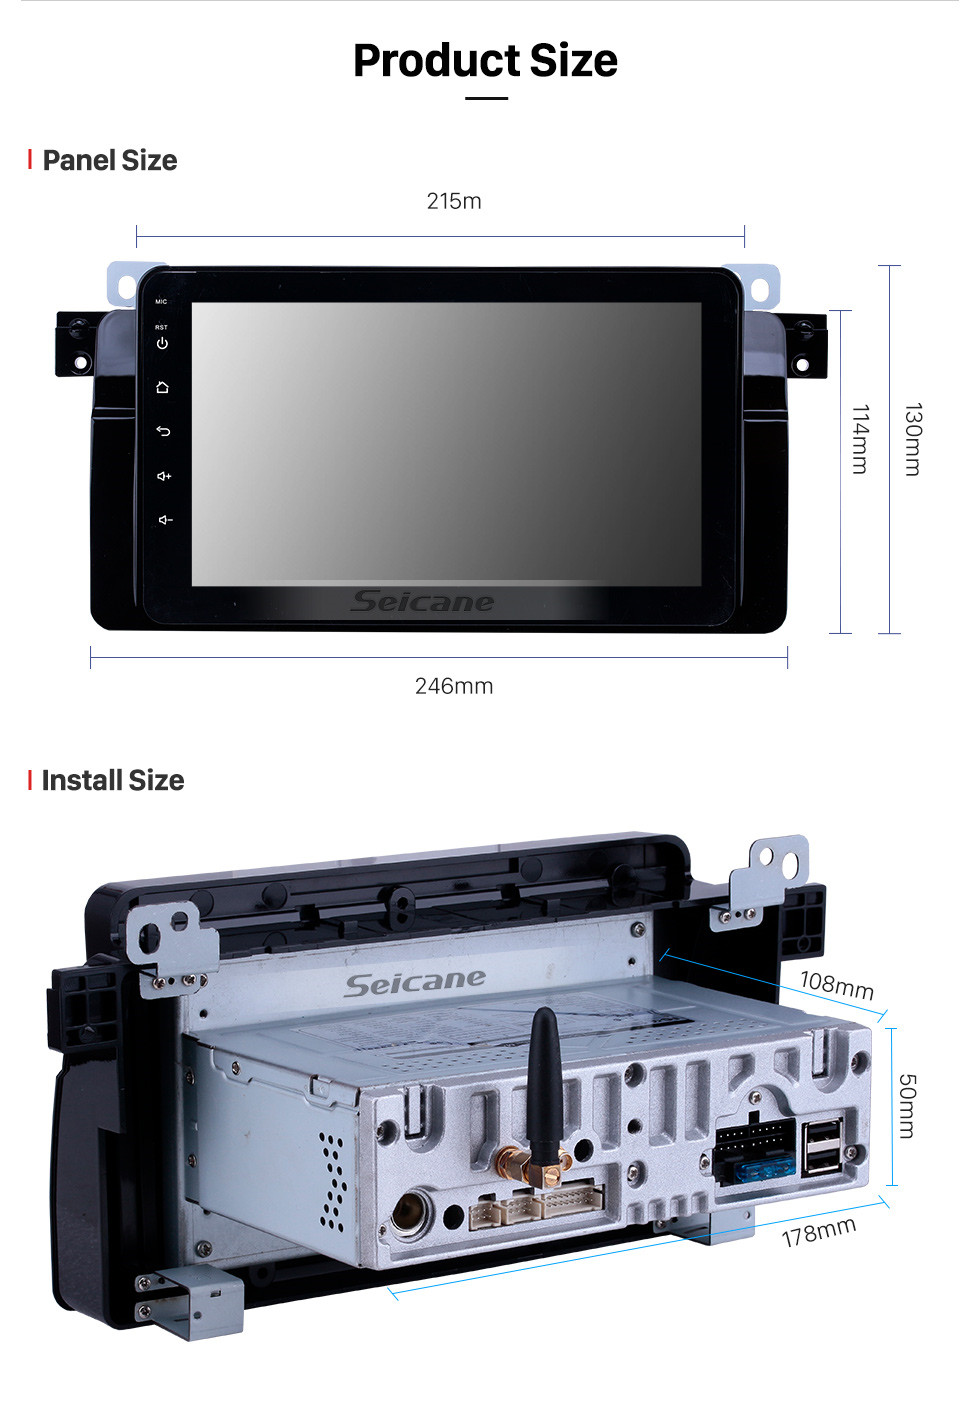 Seicane 8 inch 1998-2006 BMW 3 Series E46 M3/2001-2004 MG ZT/1999-2004 Rover 75 Android 9.0 GPS Navigation Radio Bluetooth HD Touchscreen Carplay support Mirror Link